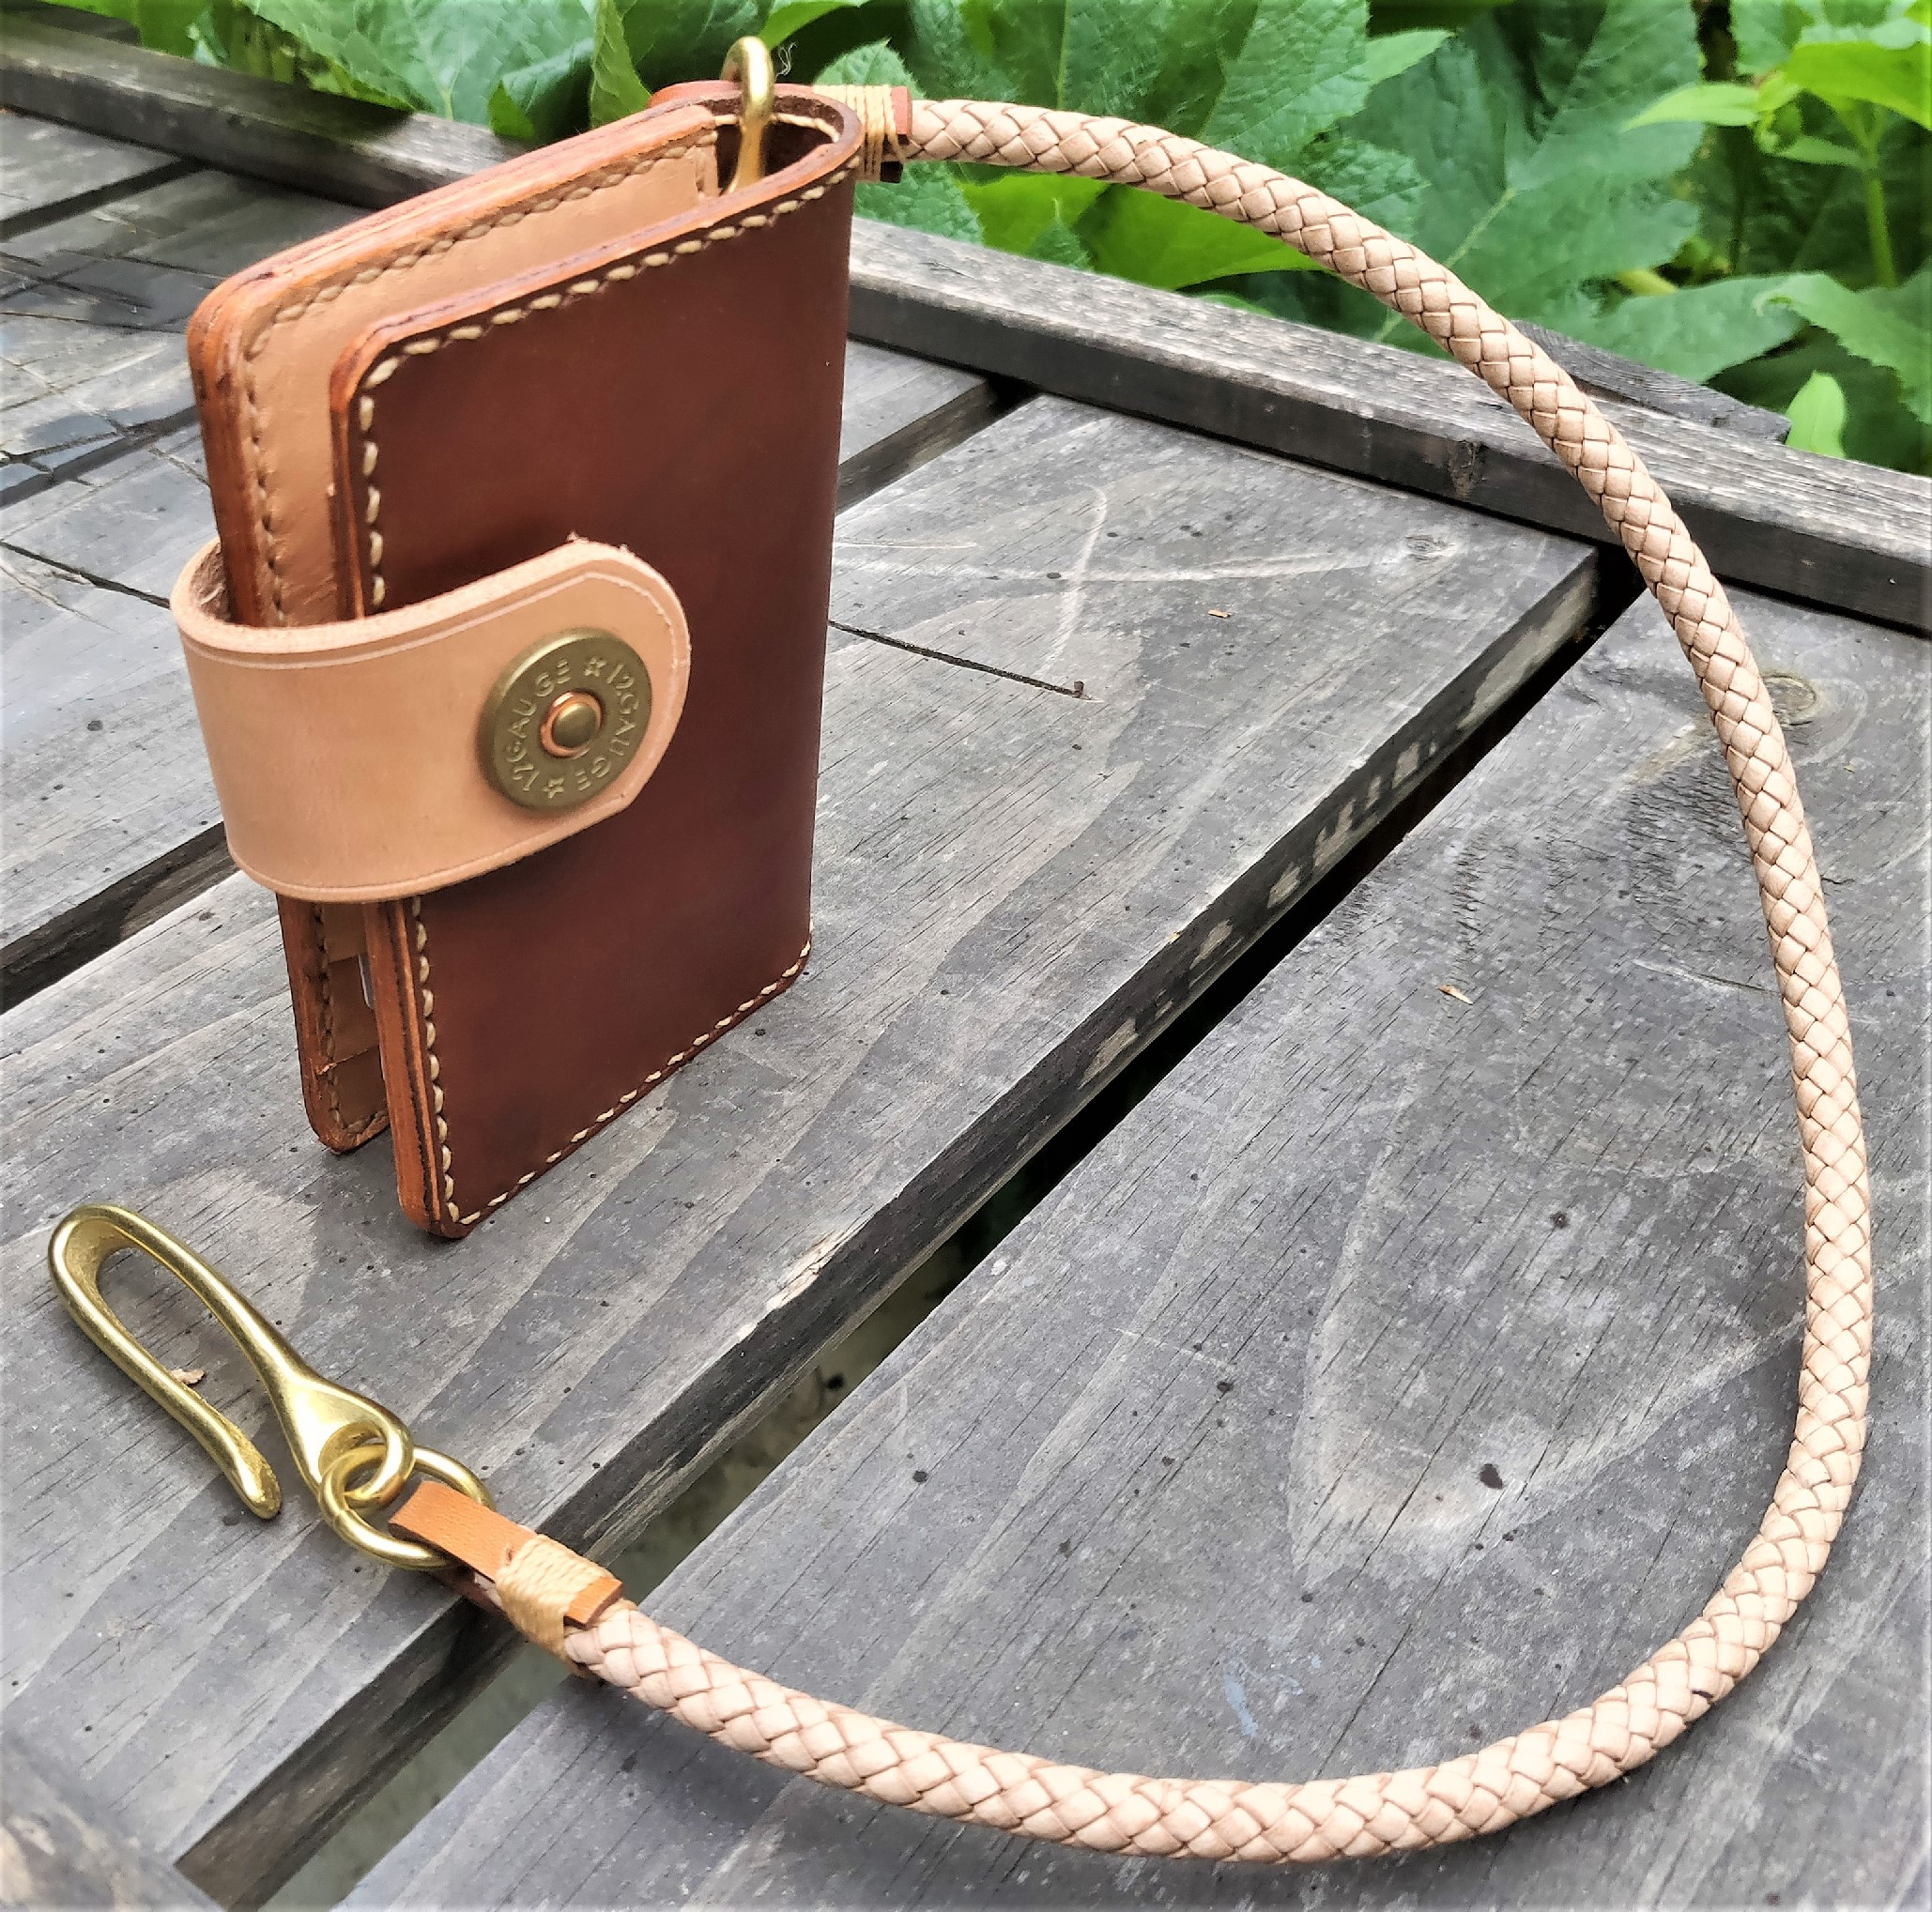 851c9fe1cf0d Handmade Leather Biker Wallet Raeda Vegetable Tanned Natural Brown With  Braided Chain